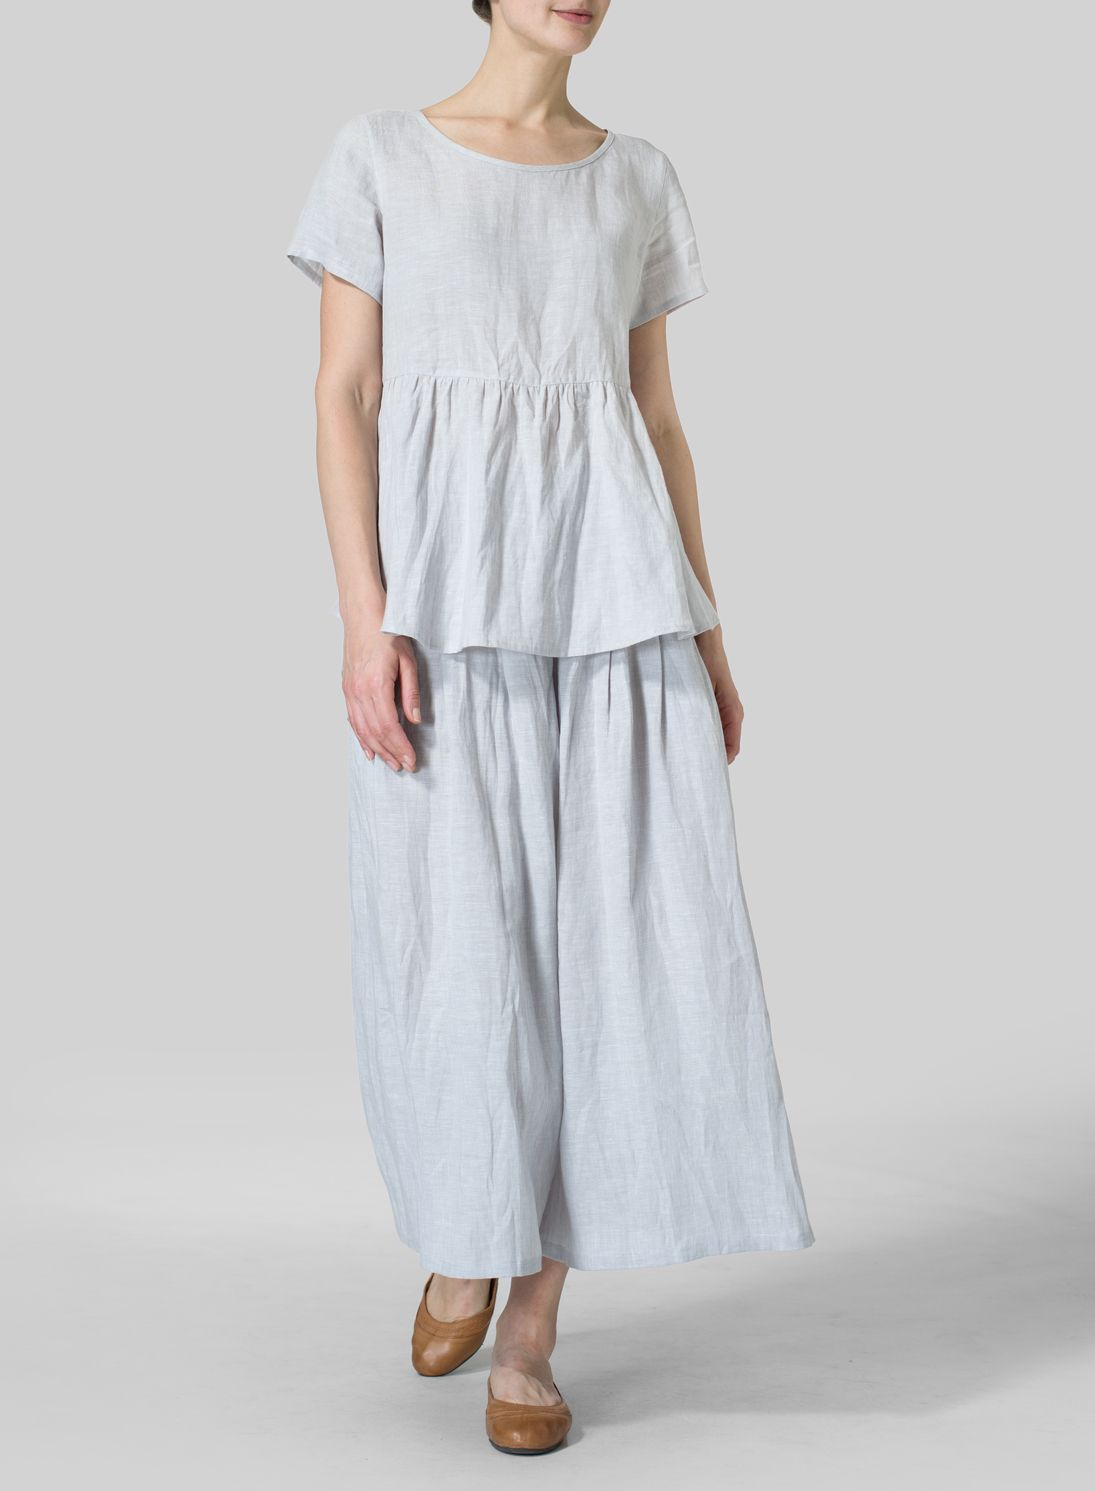 Linen short sleeve pleated blouse dress to impress in this